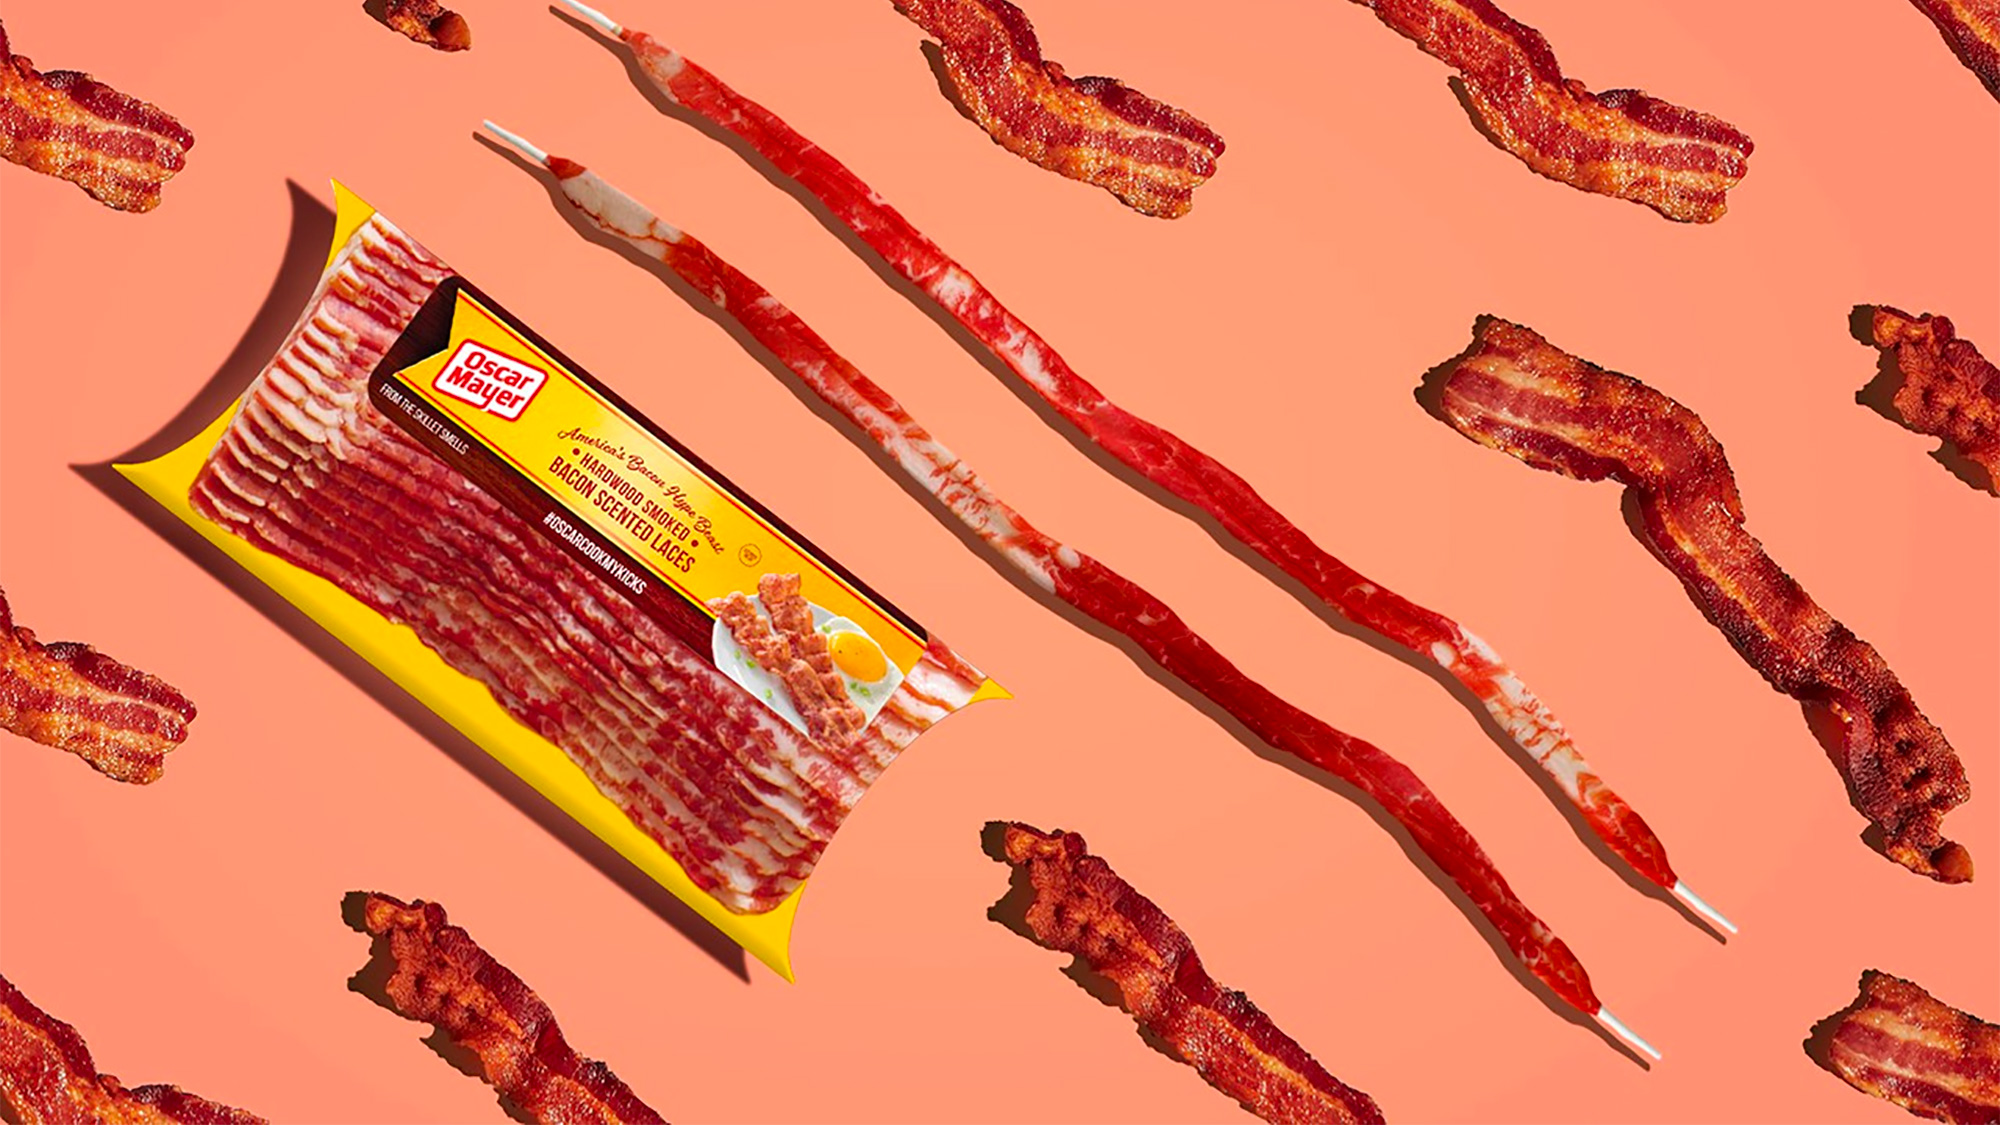 Runnin' on Bacon